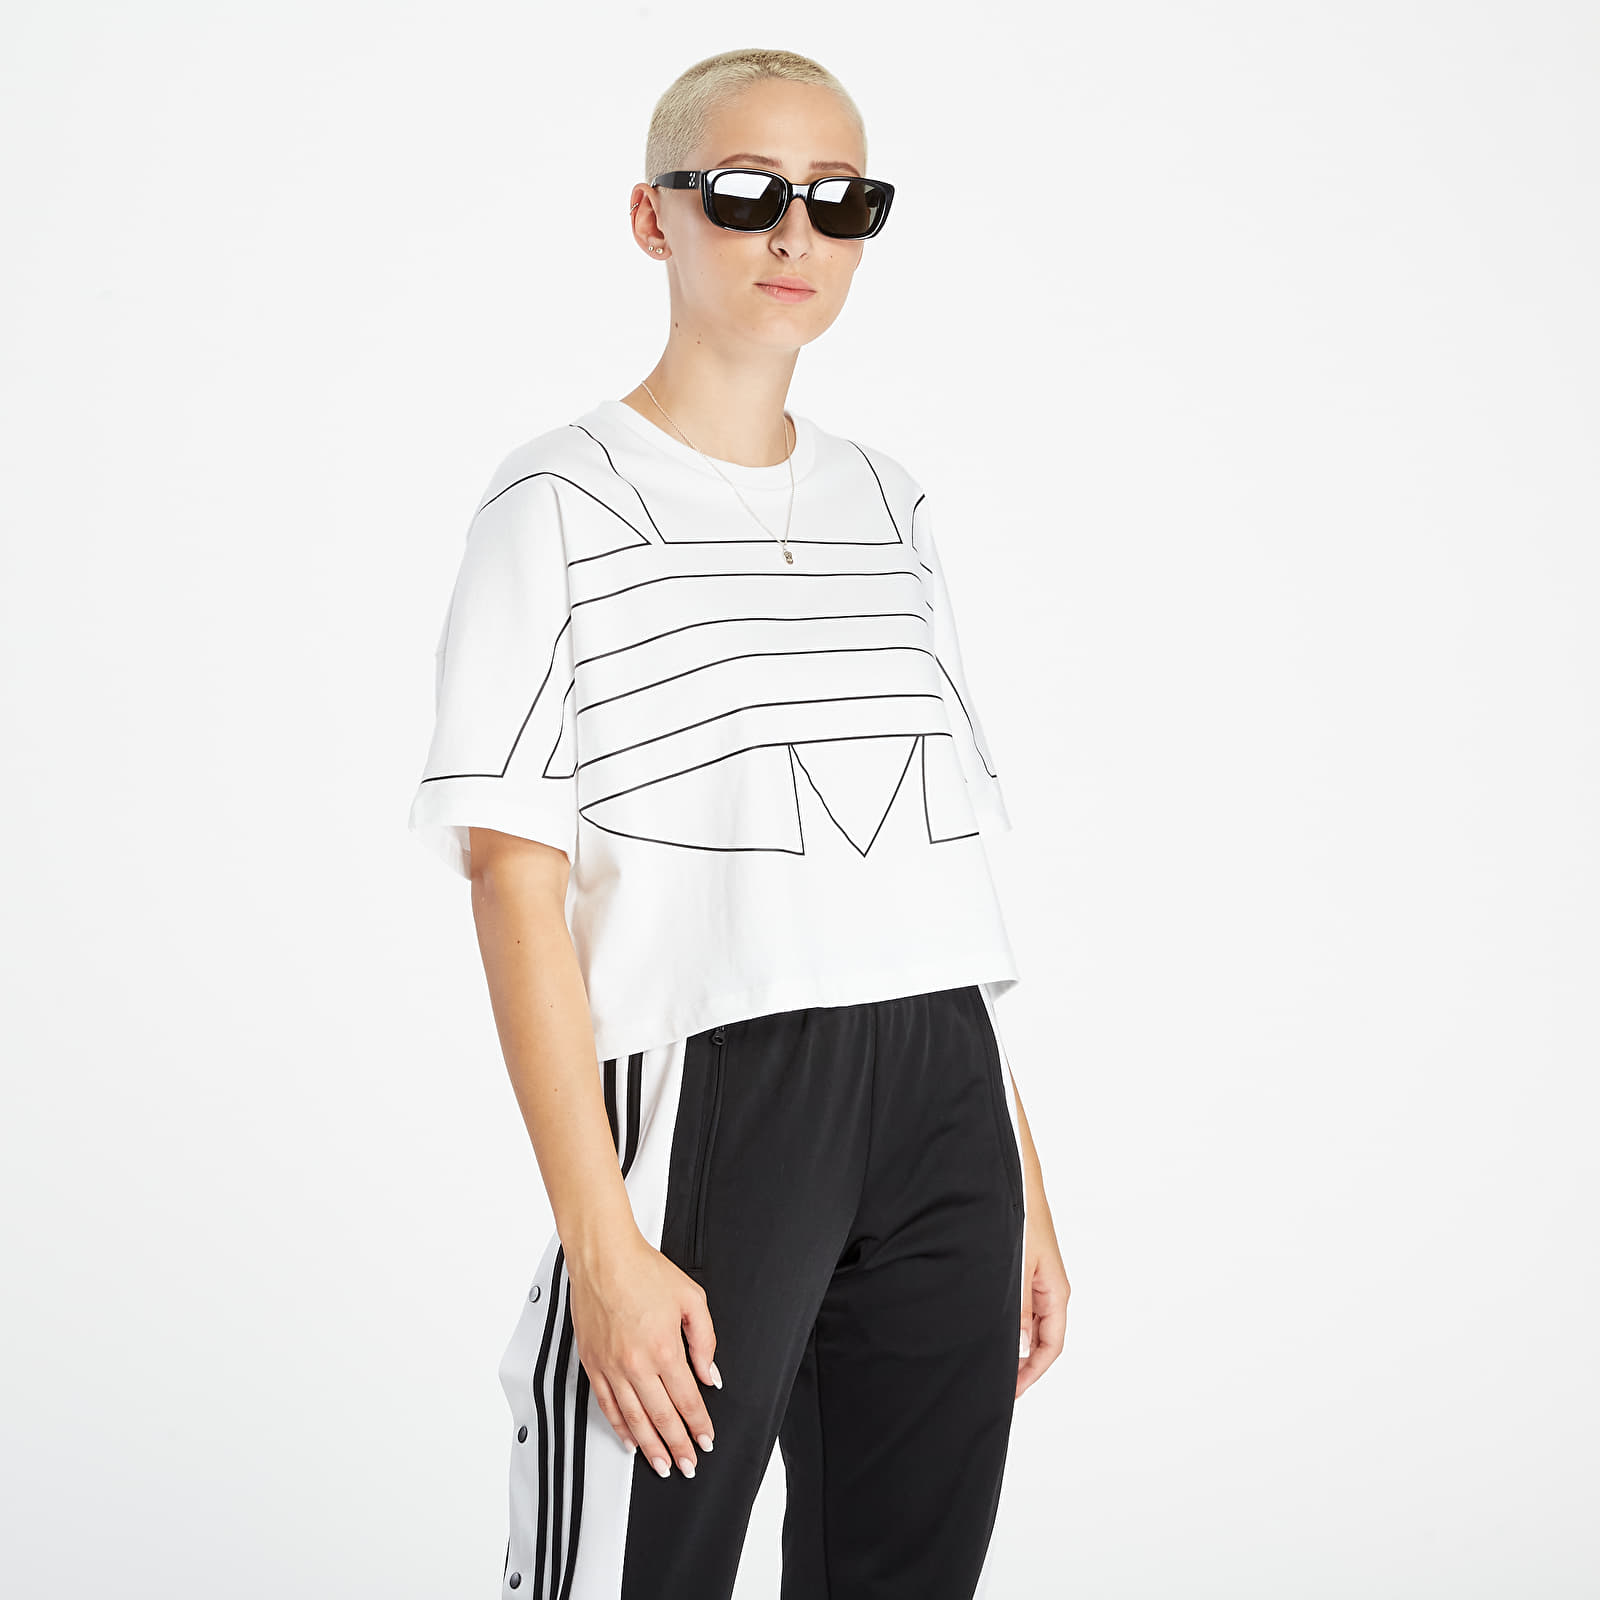 adidas Large Logo Tee White/ Black M/40